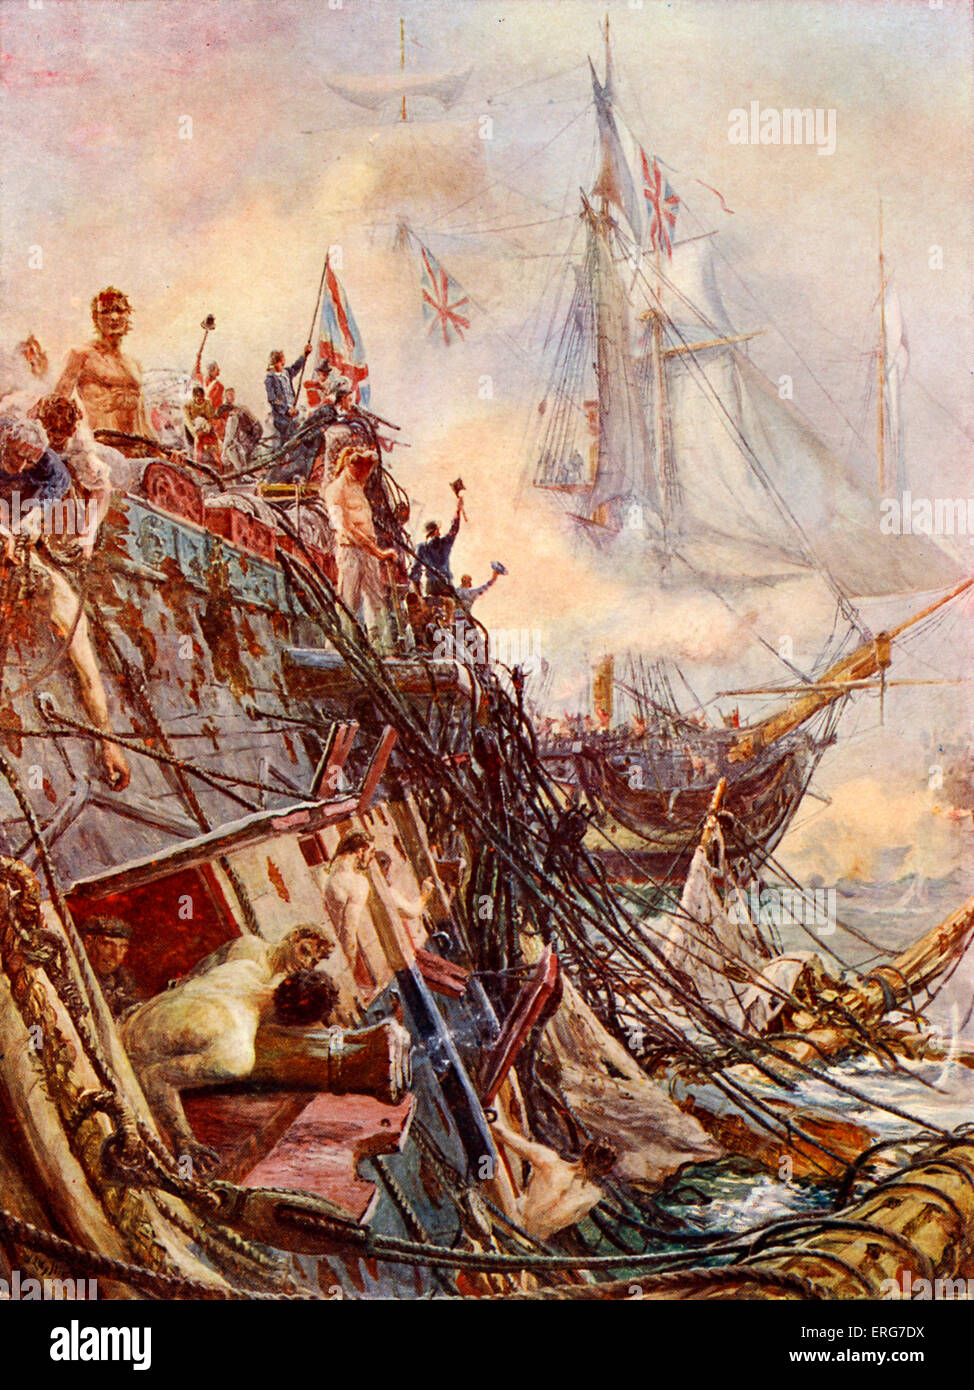 'Crippled but Unconquered' by W L Wyllie. The HMS Belleisle was the only British ship to be demasted at - Stock Image